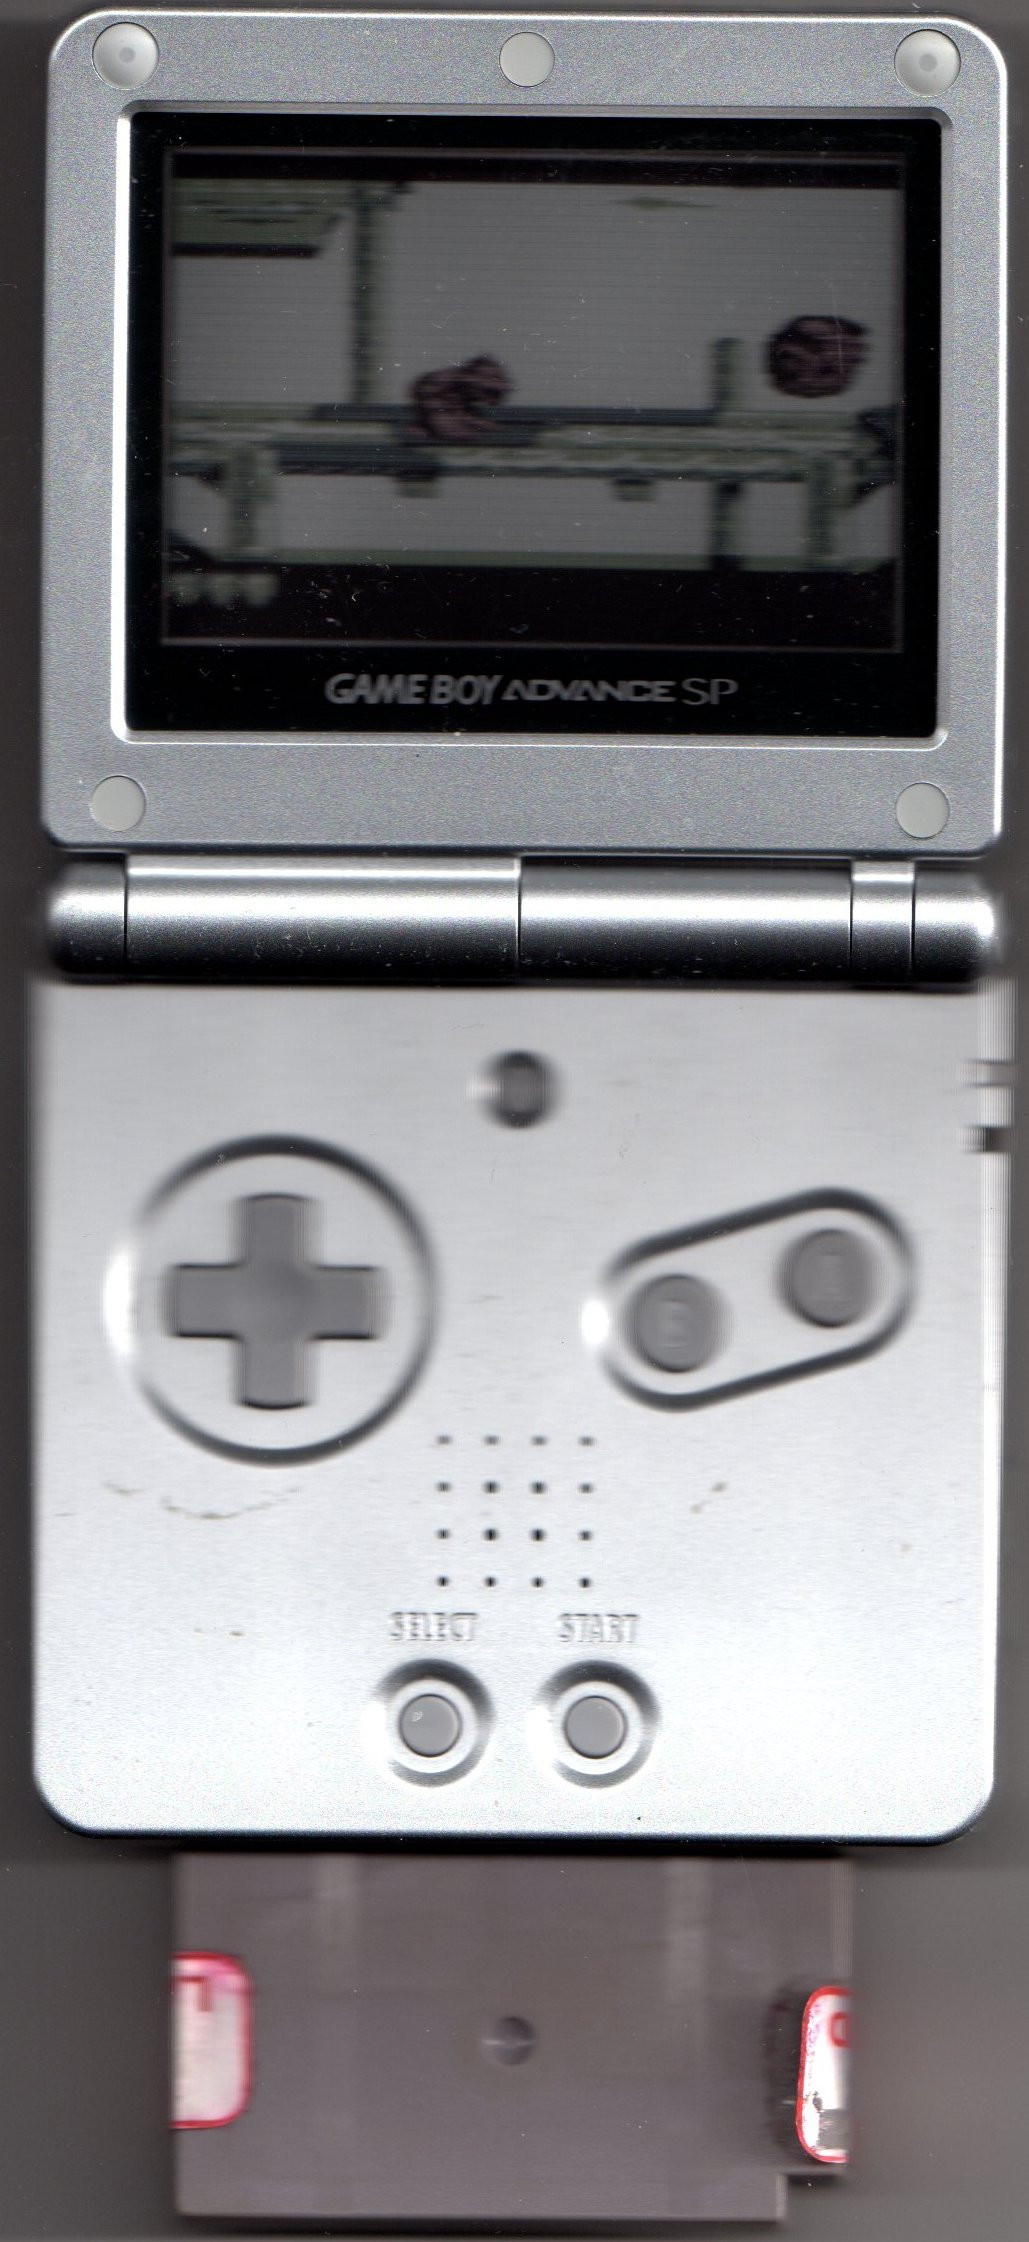 Game boy color palette - When Played On A Game Boy Color Or A Game Boy Advance The Prototype Displays A Color Palette Of Lime Teal And Dark Salmon Pink